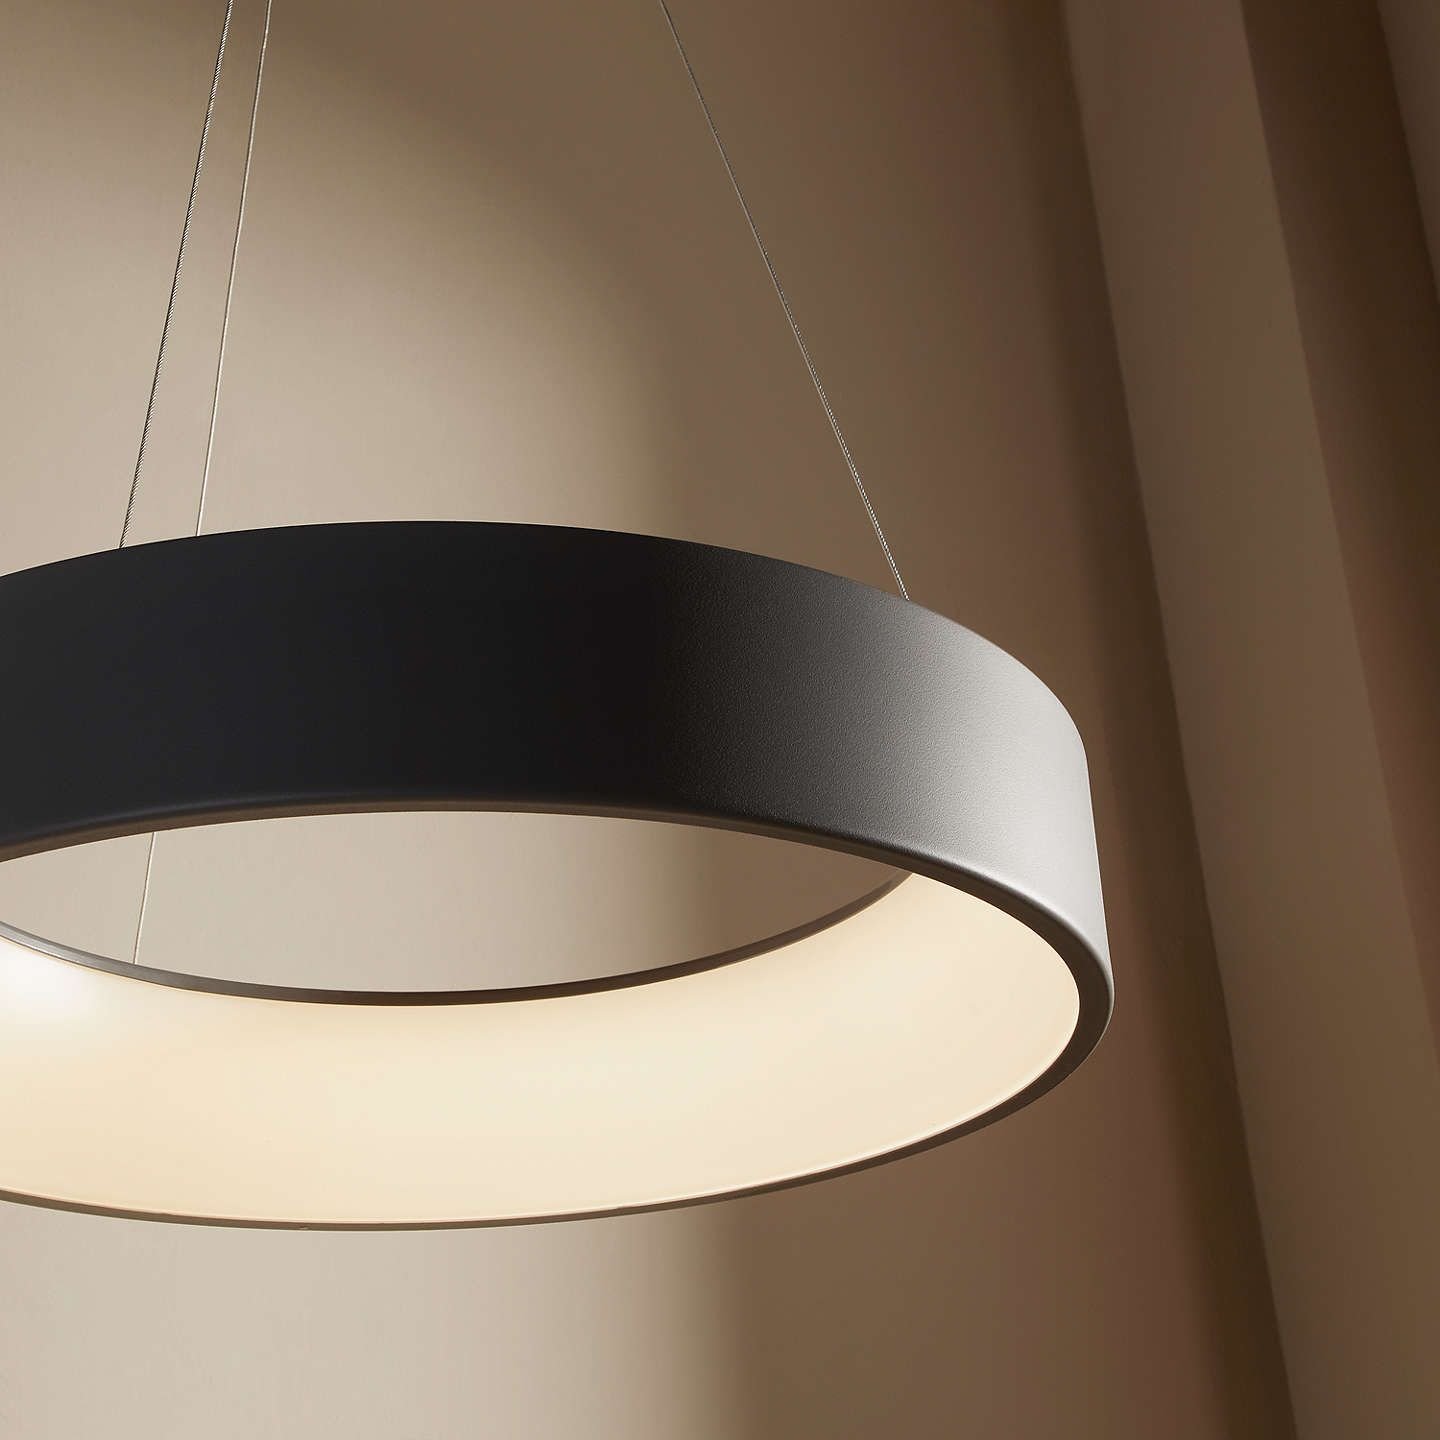 Design Project By John Lewis No 132 Finn Led Hoop Ceiling Light Ceiling Lights Led Ceiling Lights Led Hoops